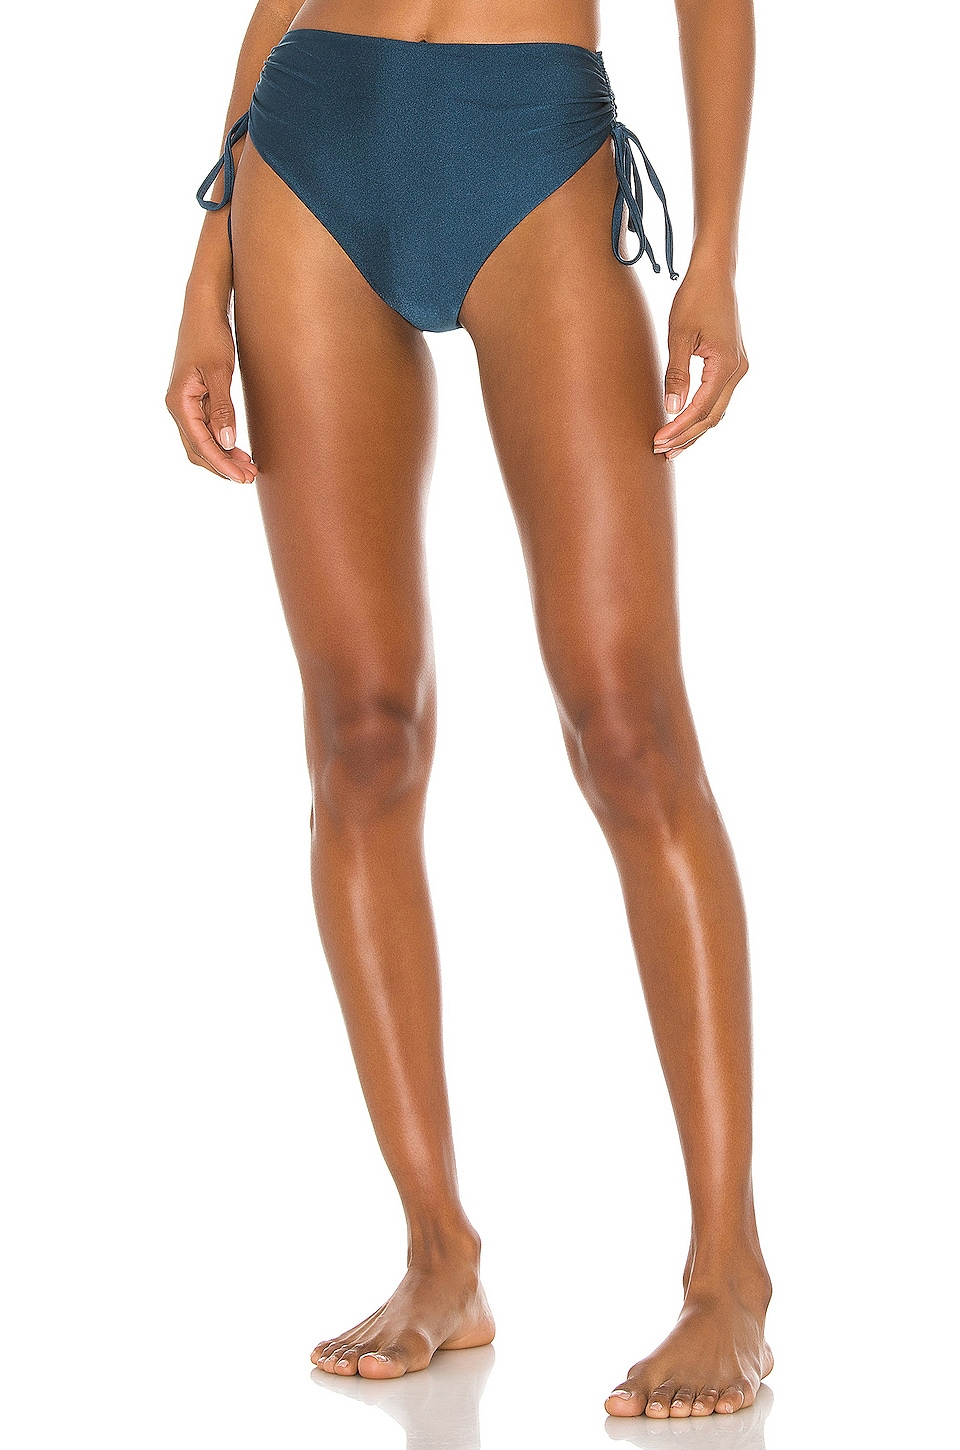 Tularosa Rini High Waist Bottom in Deep Sea